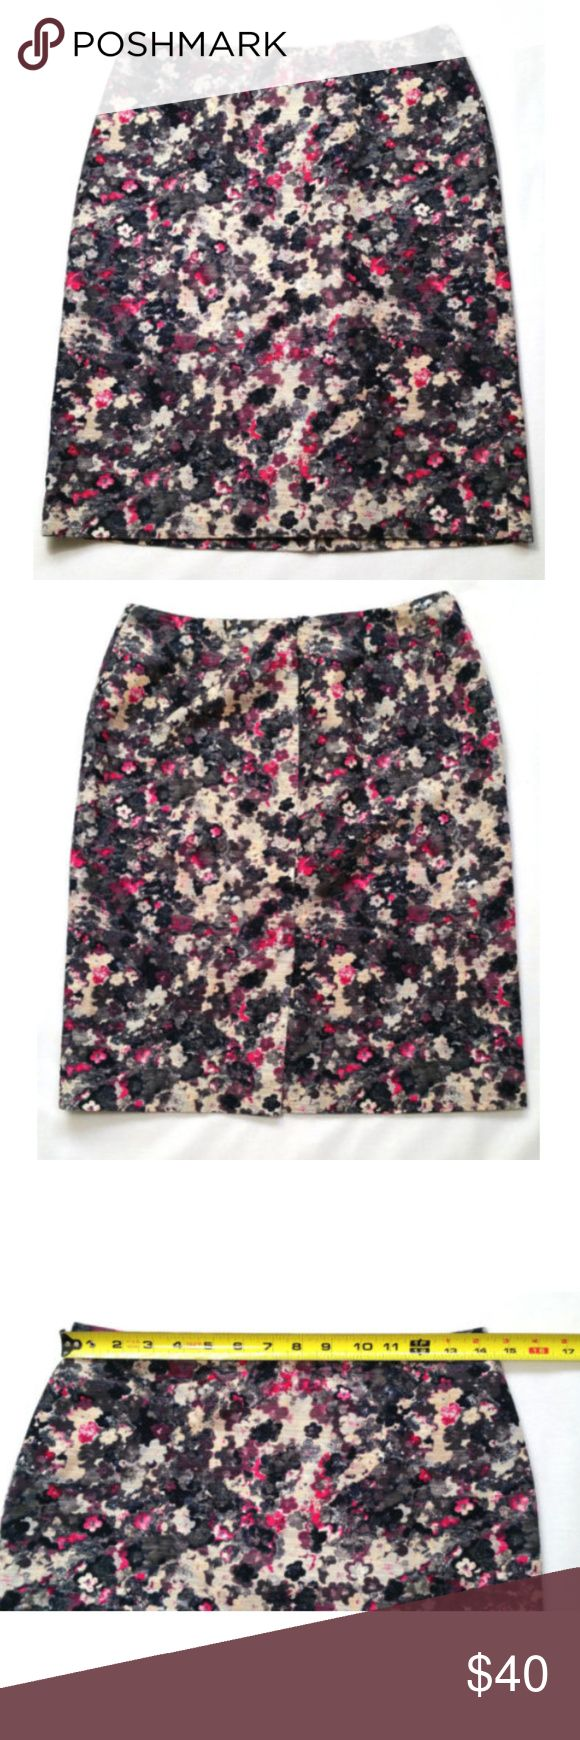 """Women Straight Skirt Career Watercolor Floral 0380 Talbots Women Stretch Straight Skirt   Style # PH95  Gently used, no flaws.  - Back zipper with hook & eye closure. - Back pleat. - Full black interior lining. - Multi-color: Black, Gray, Pink, and Ivory.  Size 4P (see photos for more measurements). Approx. measurements laying flat Waist: 14"""" Hips: 17.5"""" Length: 21""""  SKU 0380/15/CLE1 Talbots Skirts Pencil"""